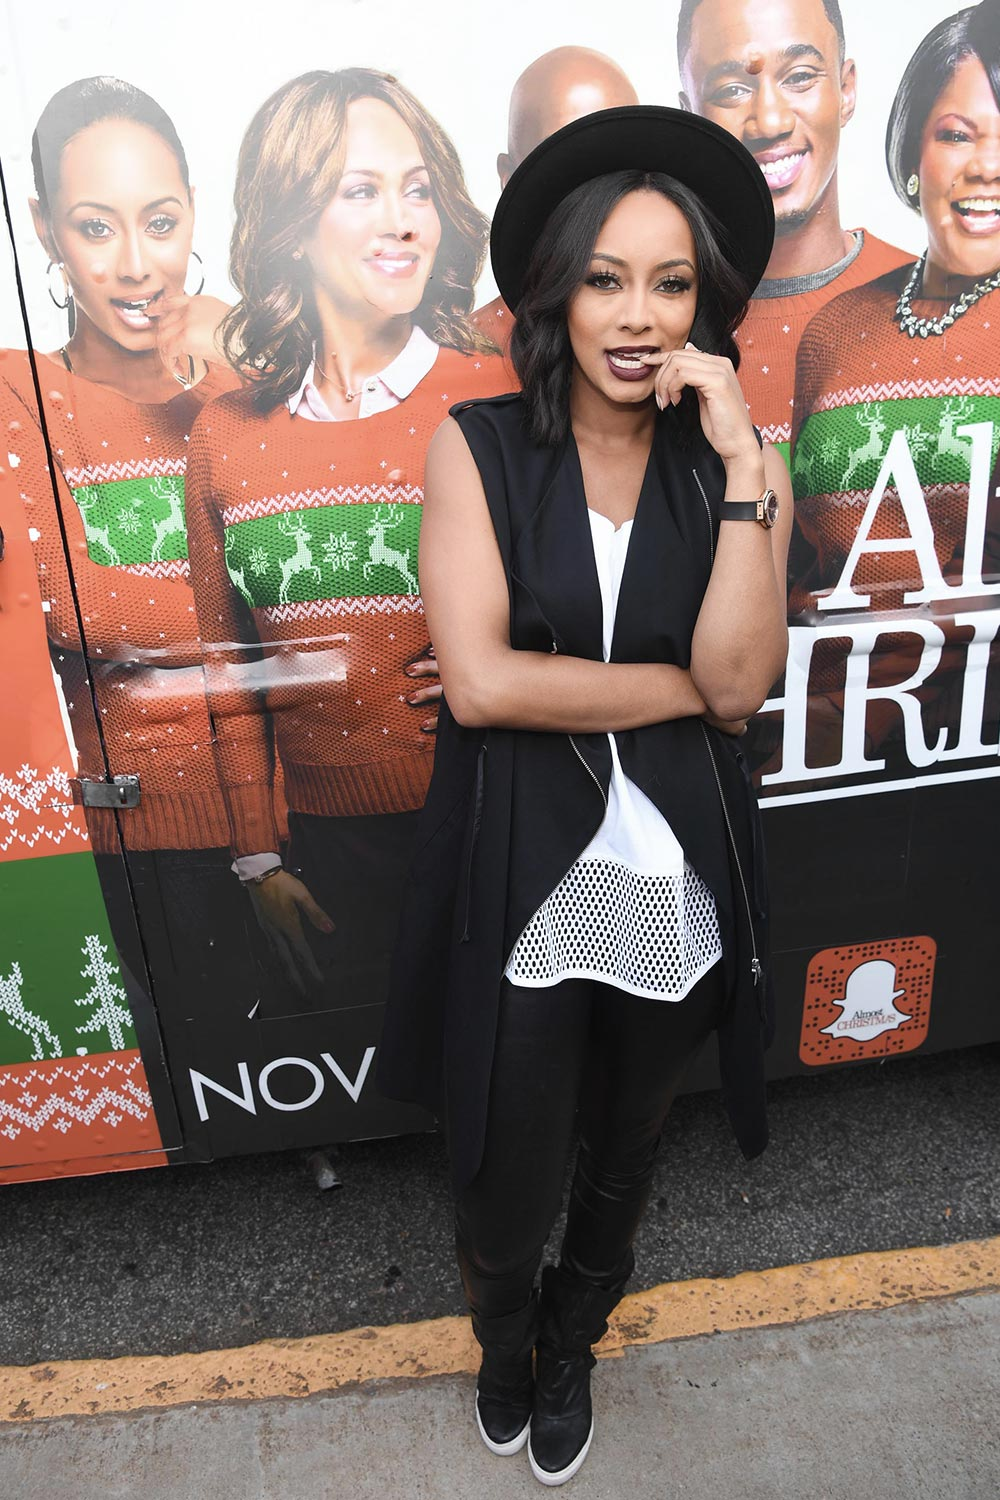 Almost Christmas Keri Hilson.Keri Hilson Attends Almost Christmas Food Truck Tailgate